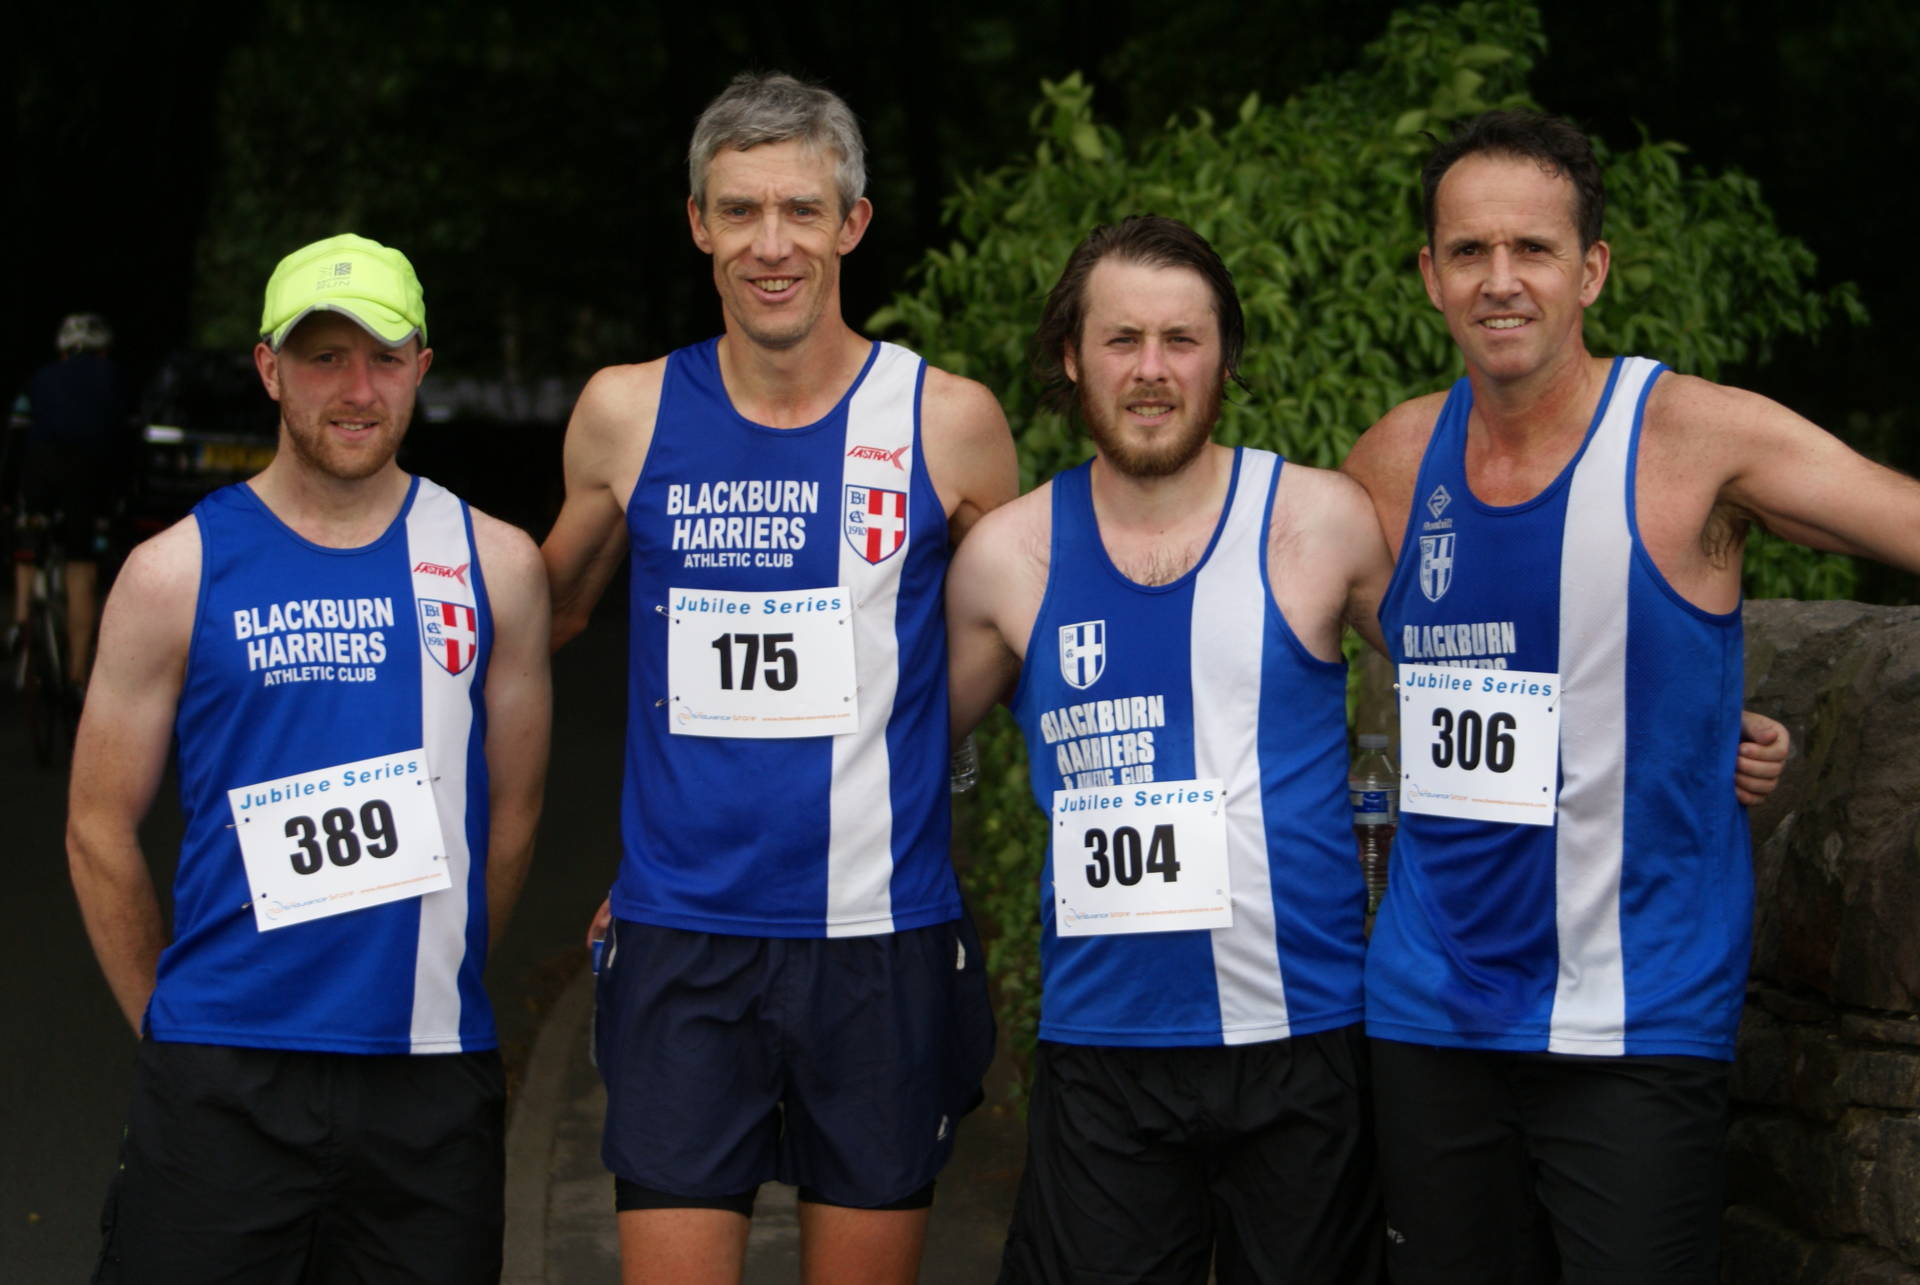 Ben Wins at Horwich & Harriers Win Team – John 3rd at Sabden – Victoria Wins Hunter 5k – Aggie's Staircase